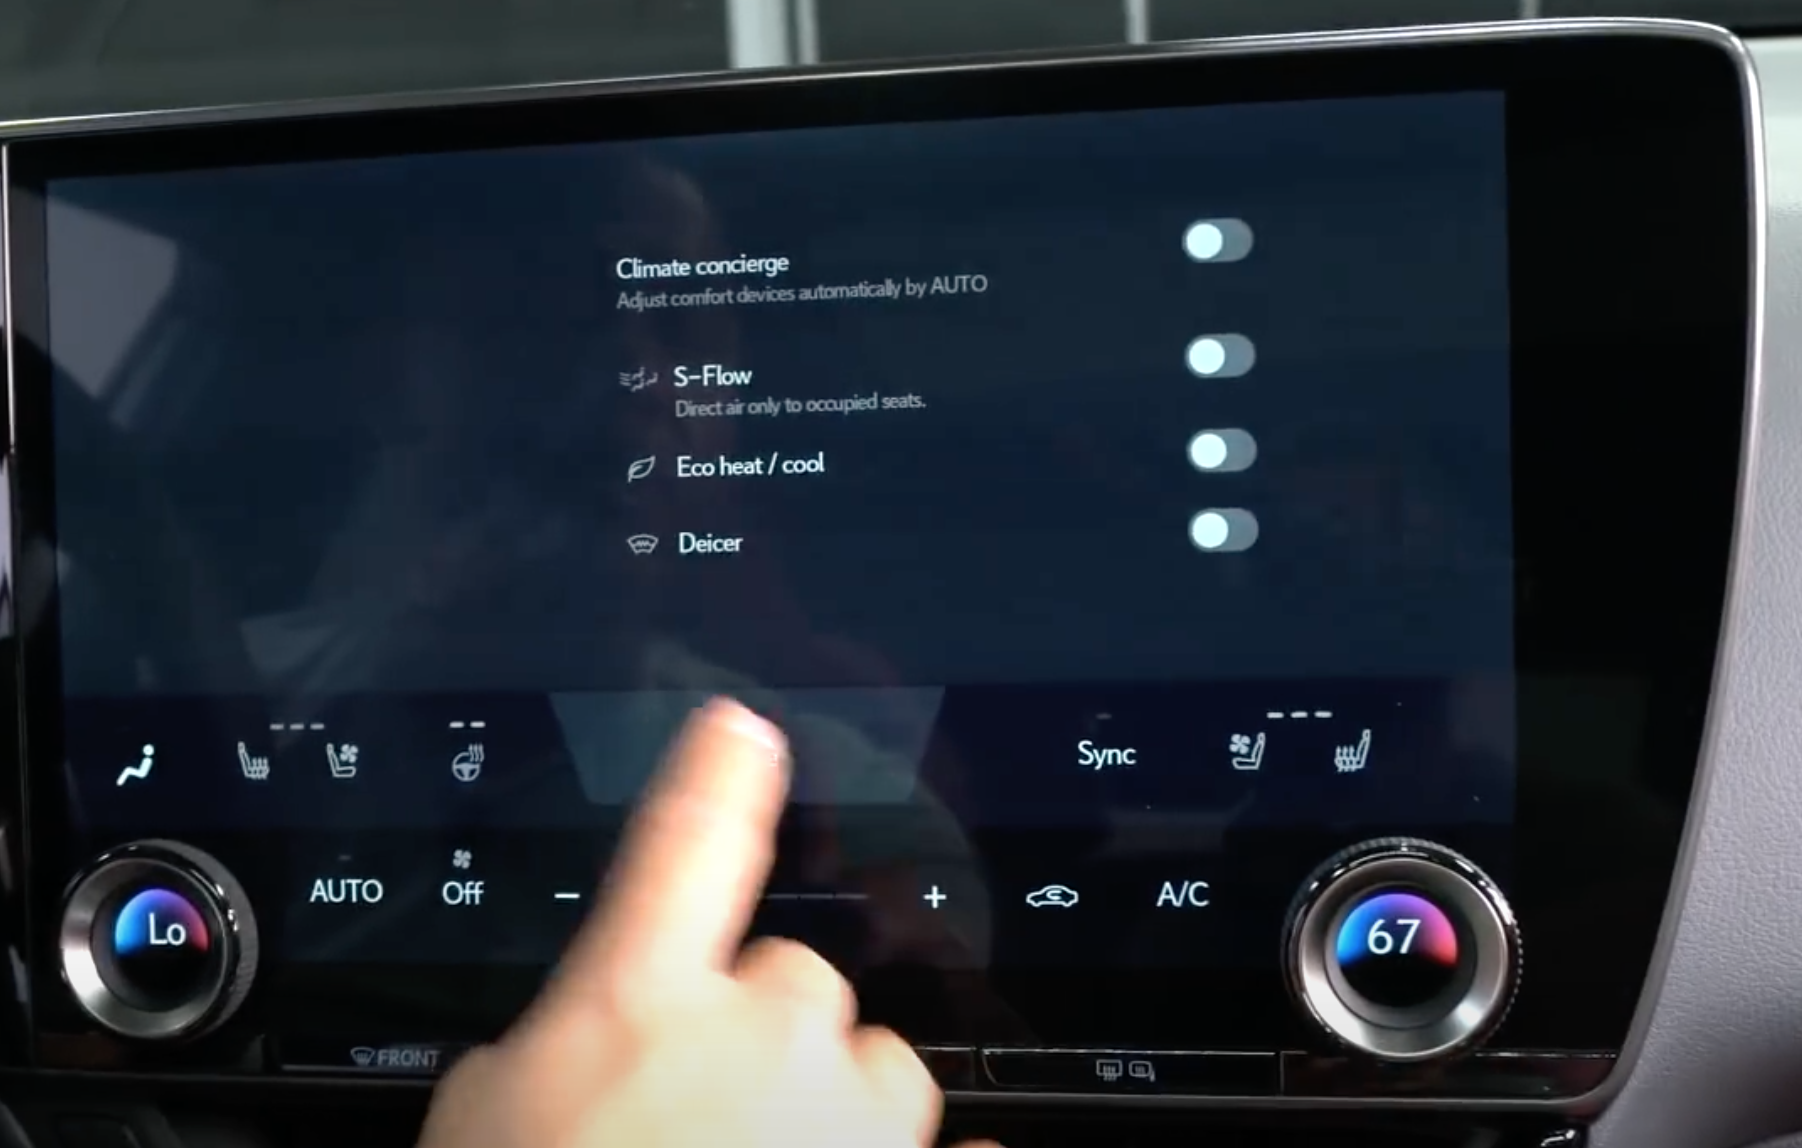 Climate settings such as turning on and off de-icing through toggles